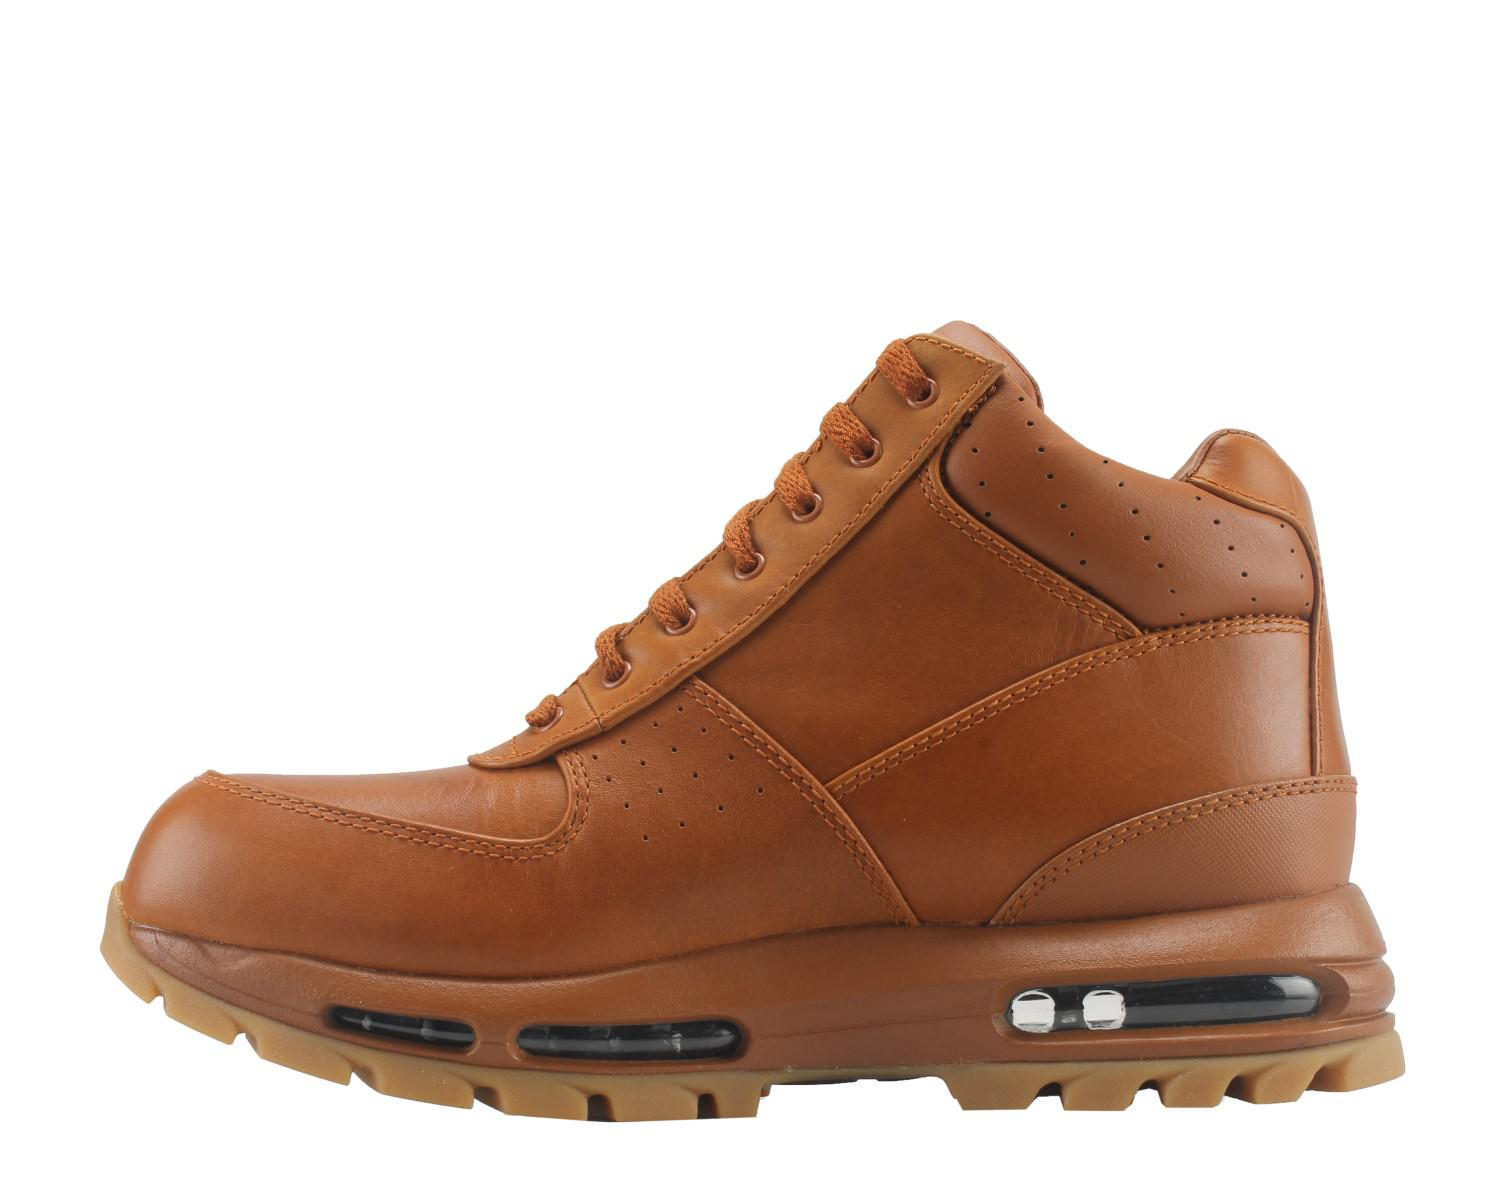 d6df647b38289 Lyst - Nike Air Max Goadome Acg Boots Size 12 in Brown for Men